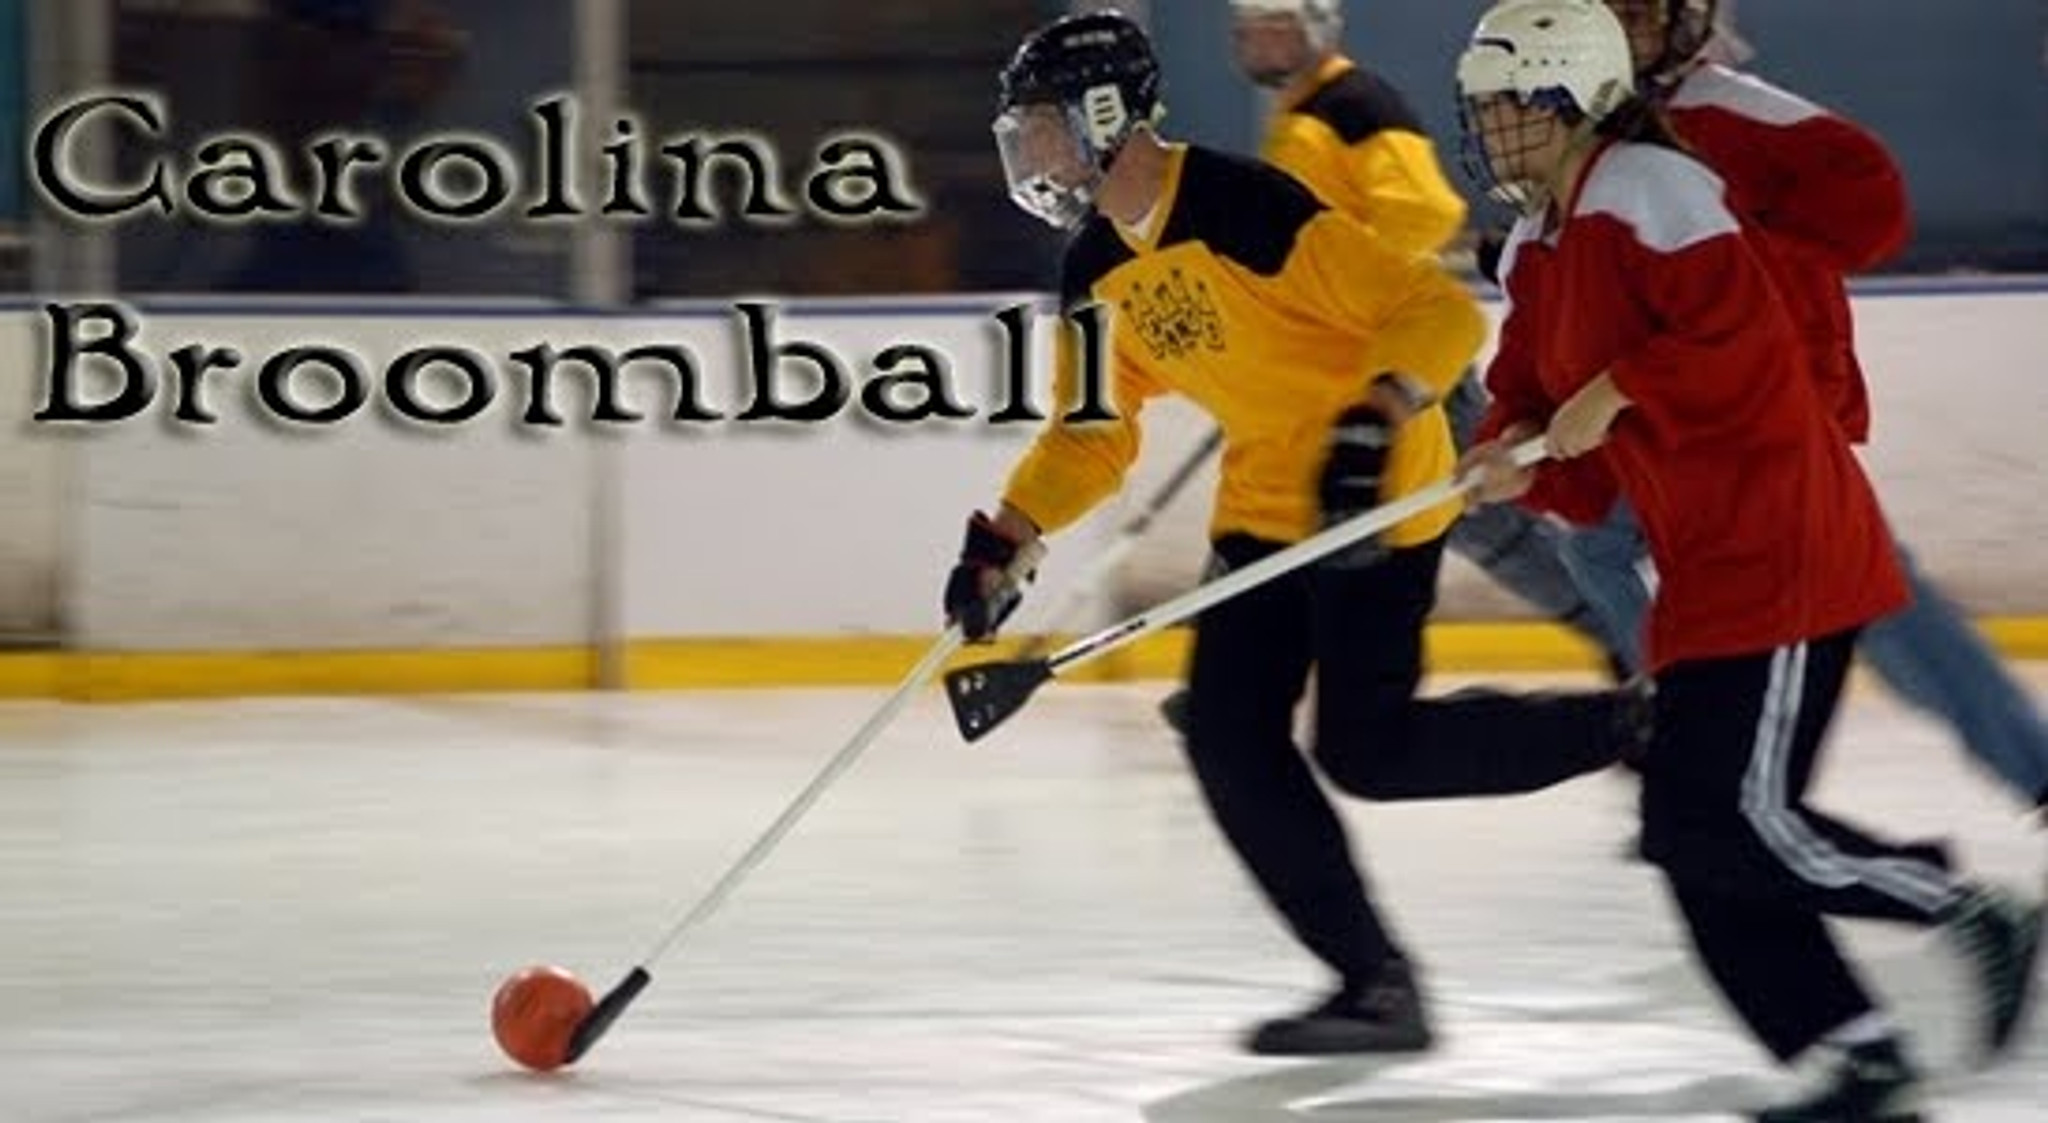 Carolina Broomball!